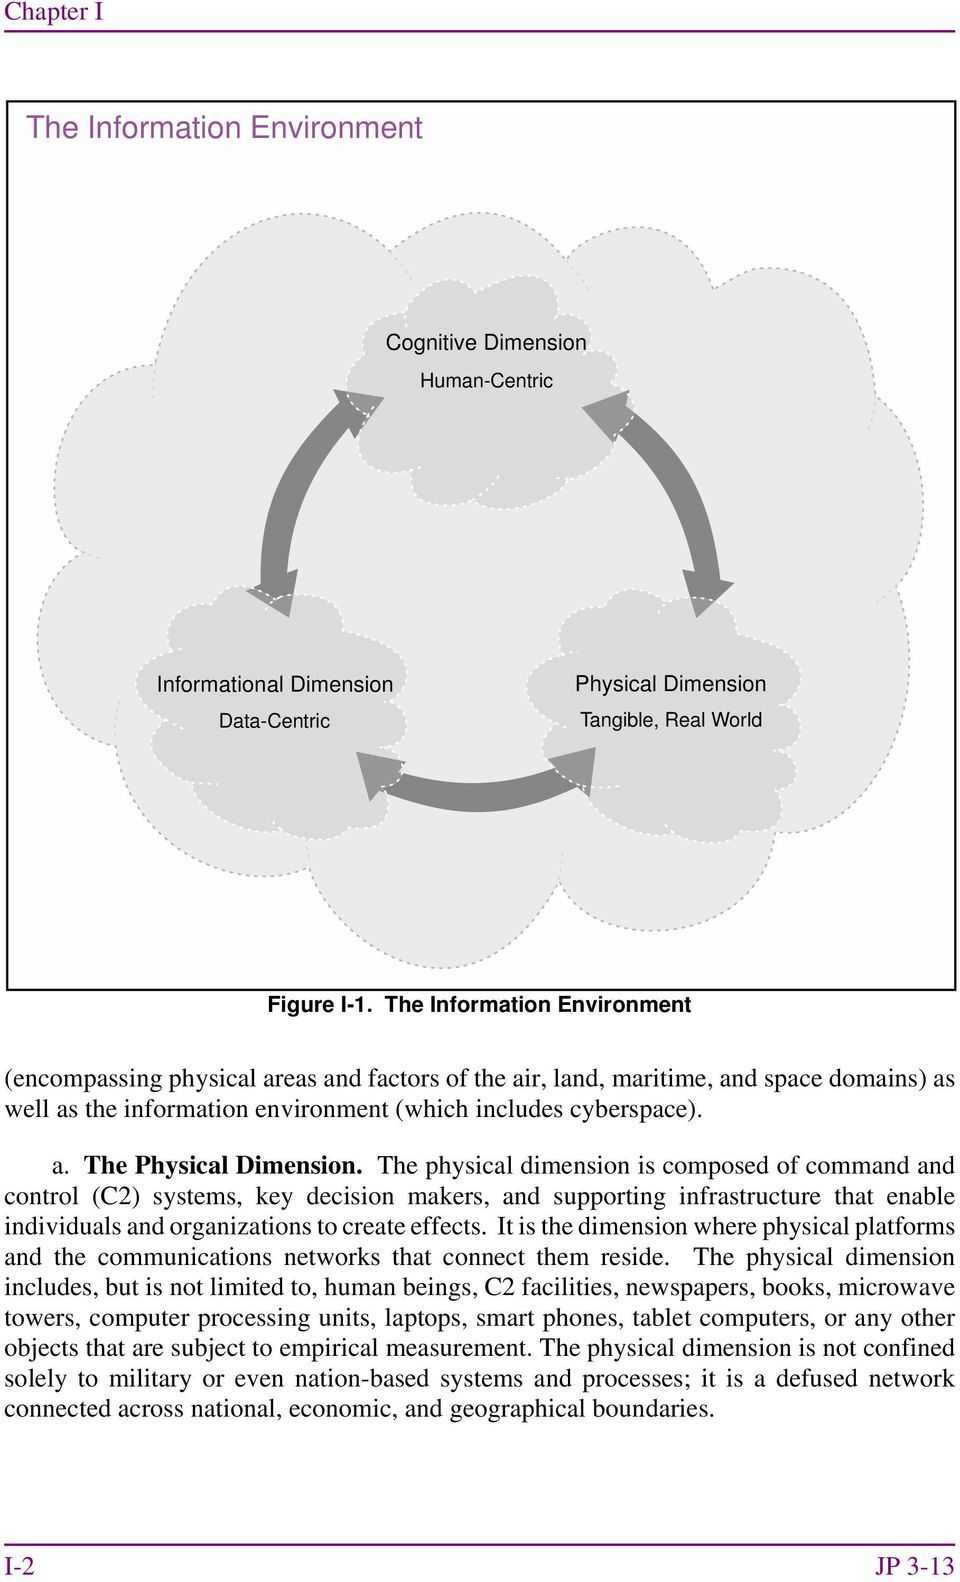 The physical dimension is composed of command and control (C2) systems, key decision makers, and supporting infrastructure that enable individuals and organizations to create effects.